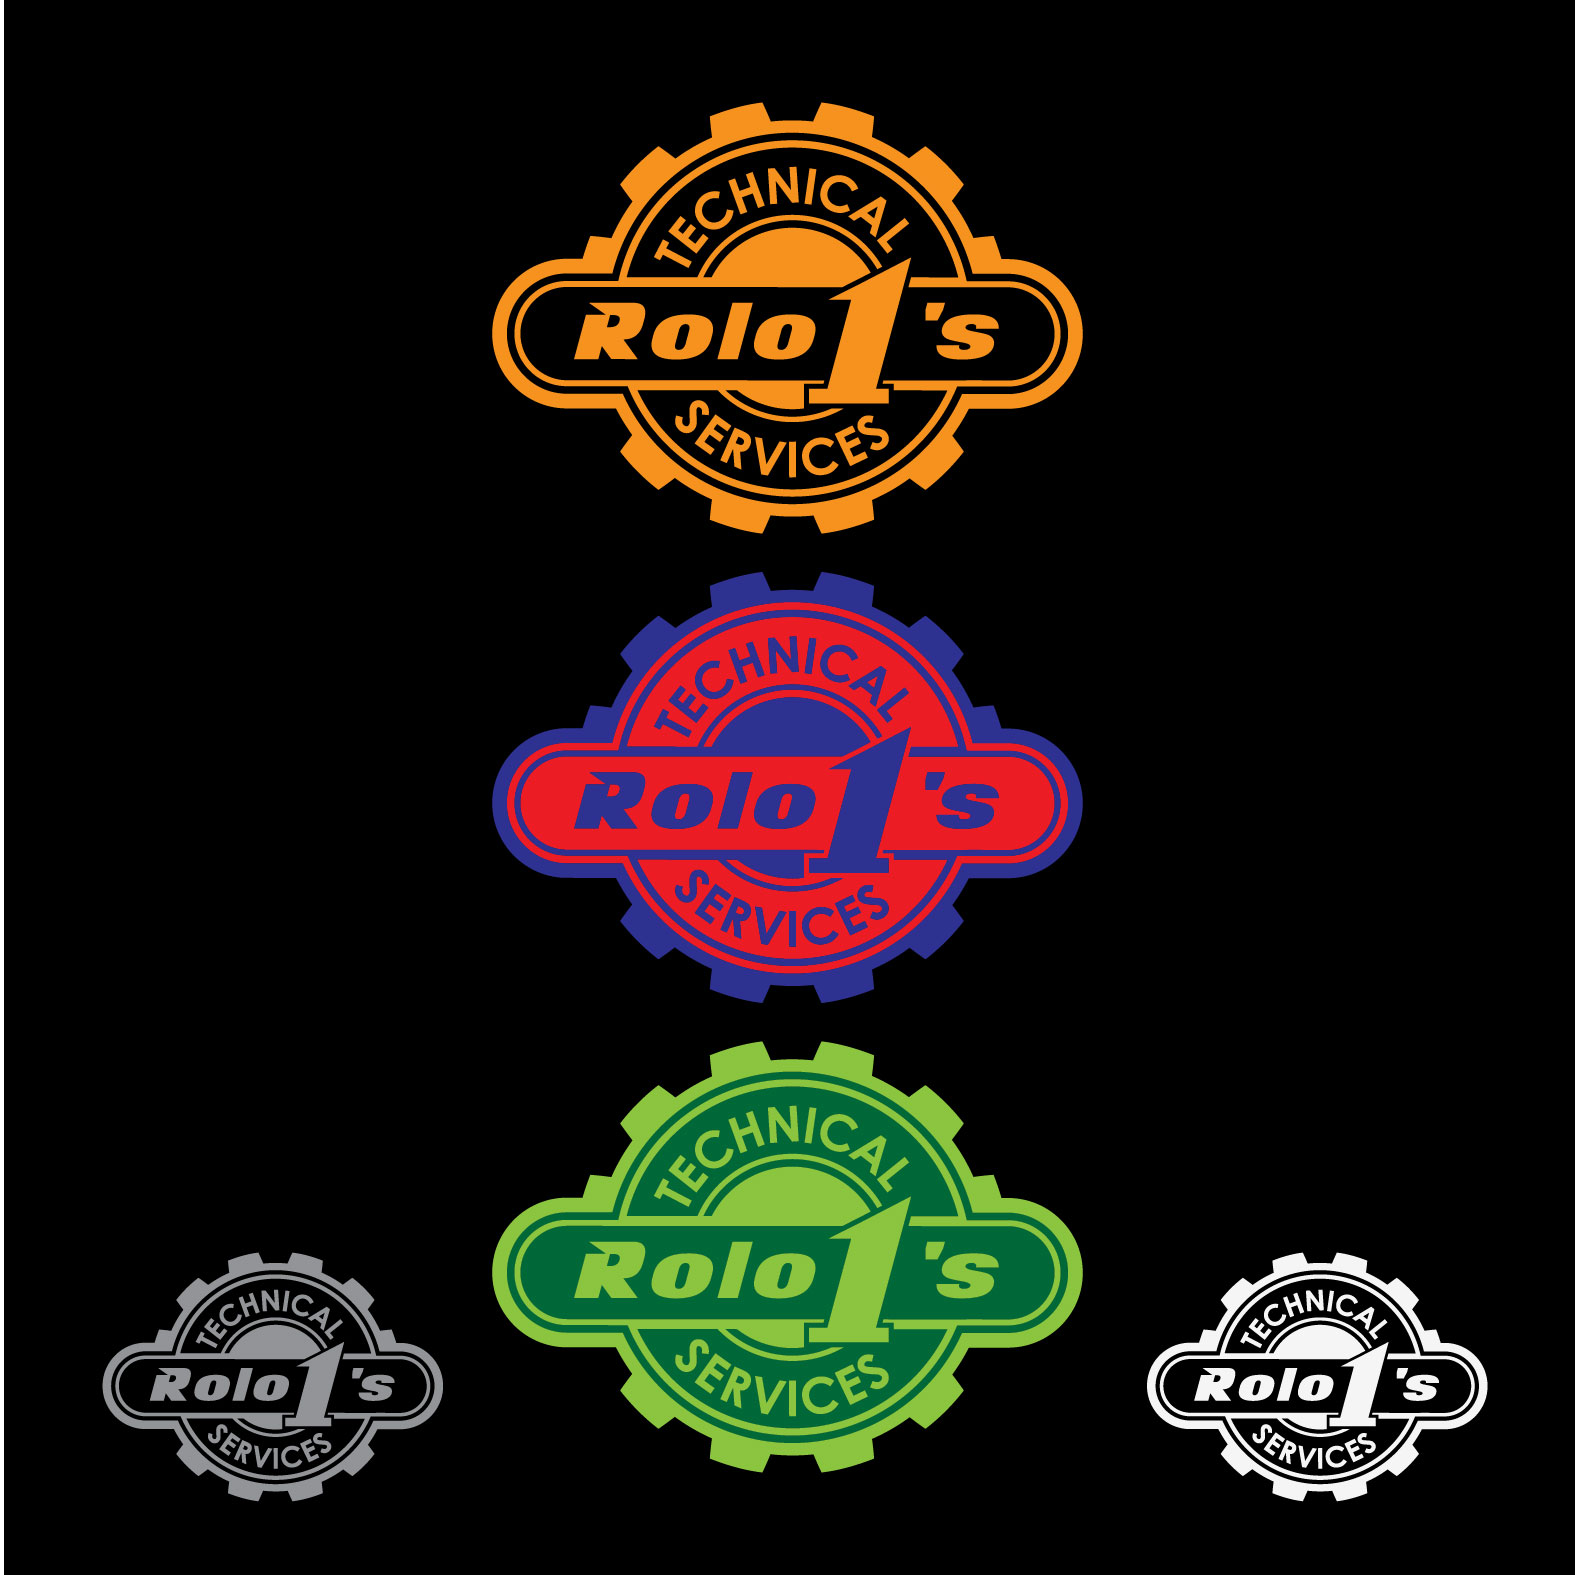 Logo Design by lagalag - Entry No. 24 in the Logo Design Contest Inspiring Logo Design for Rolo1's Technical Services.